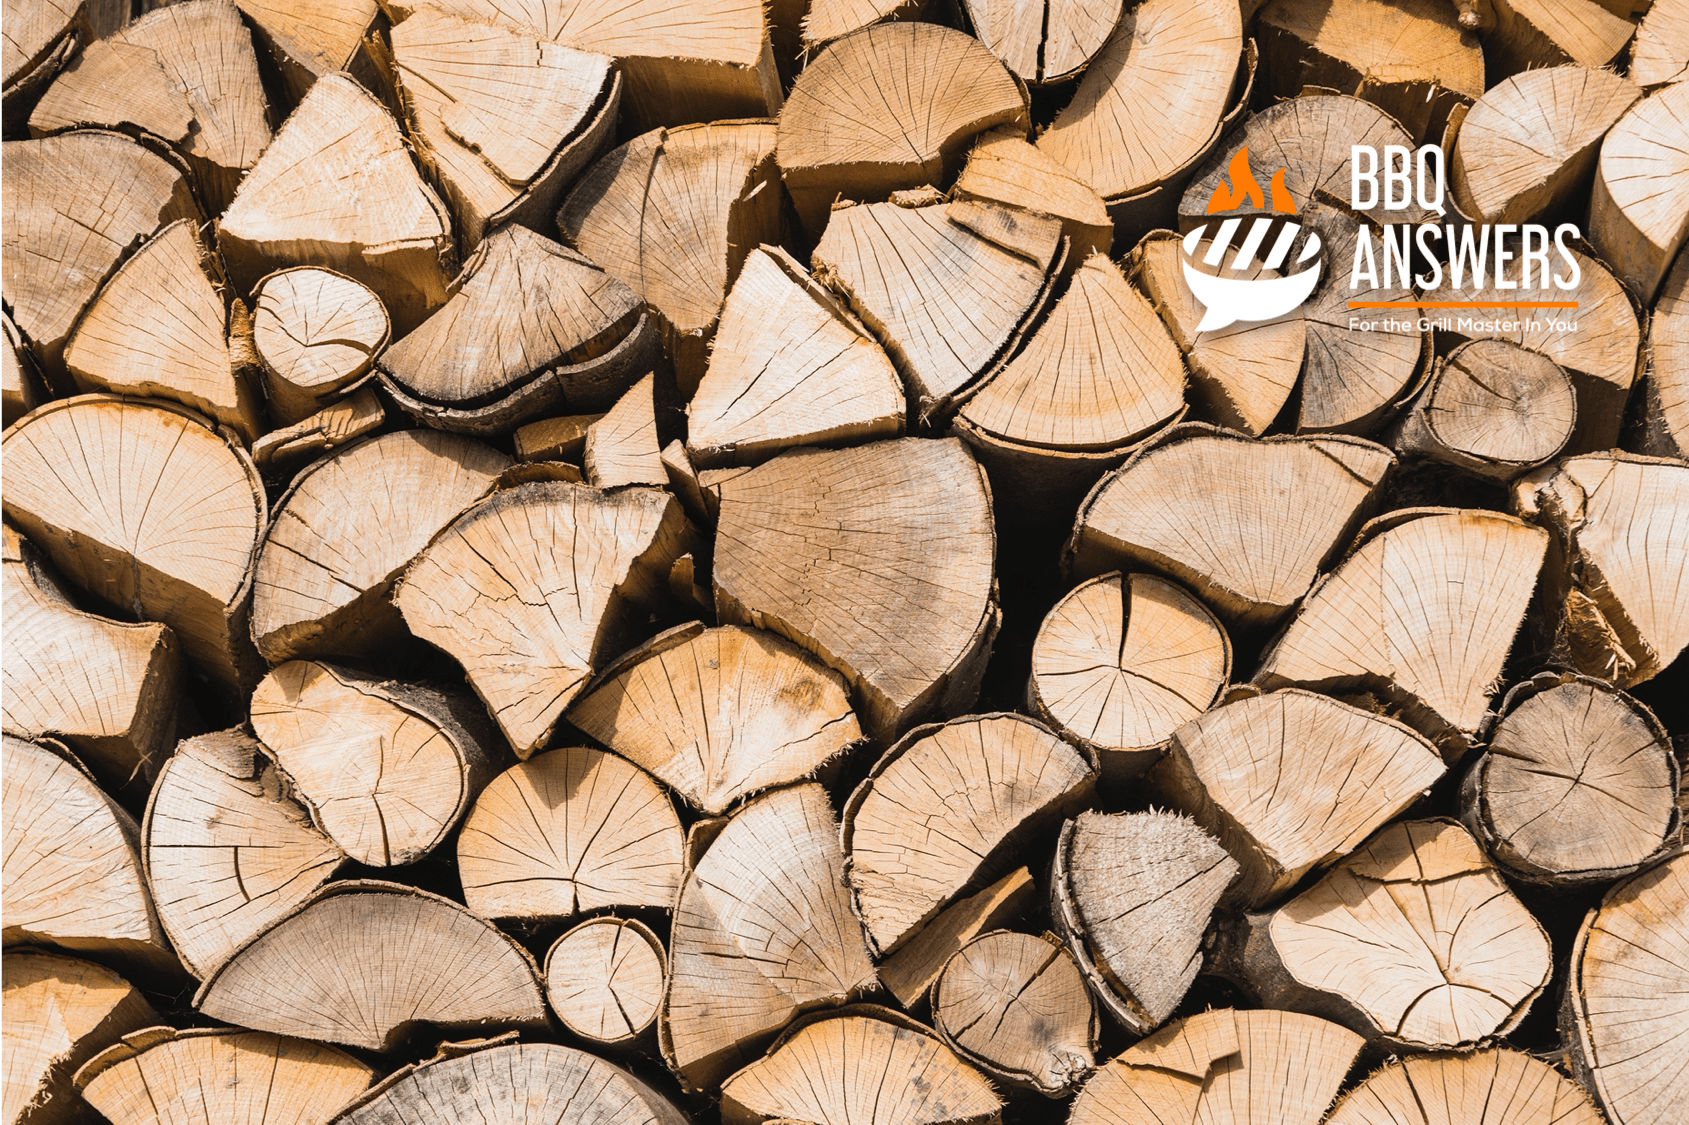 Dried Hardwood | Guide to BBQ Wood Selection | BBQanswers